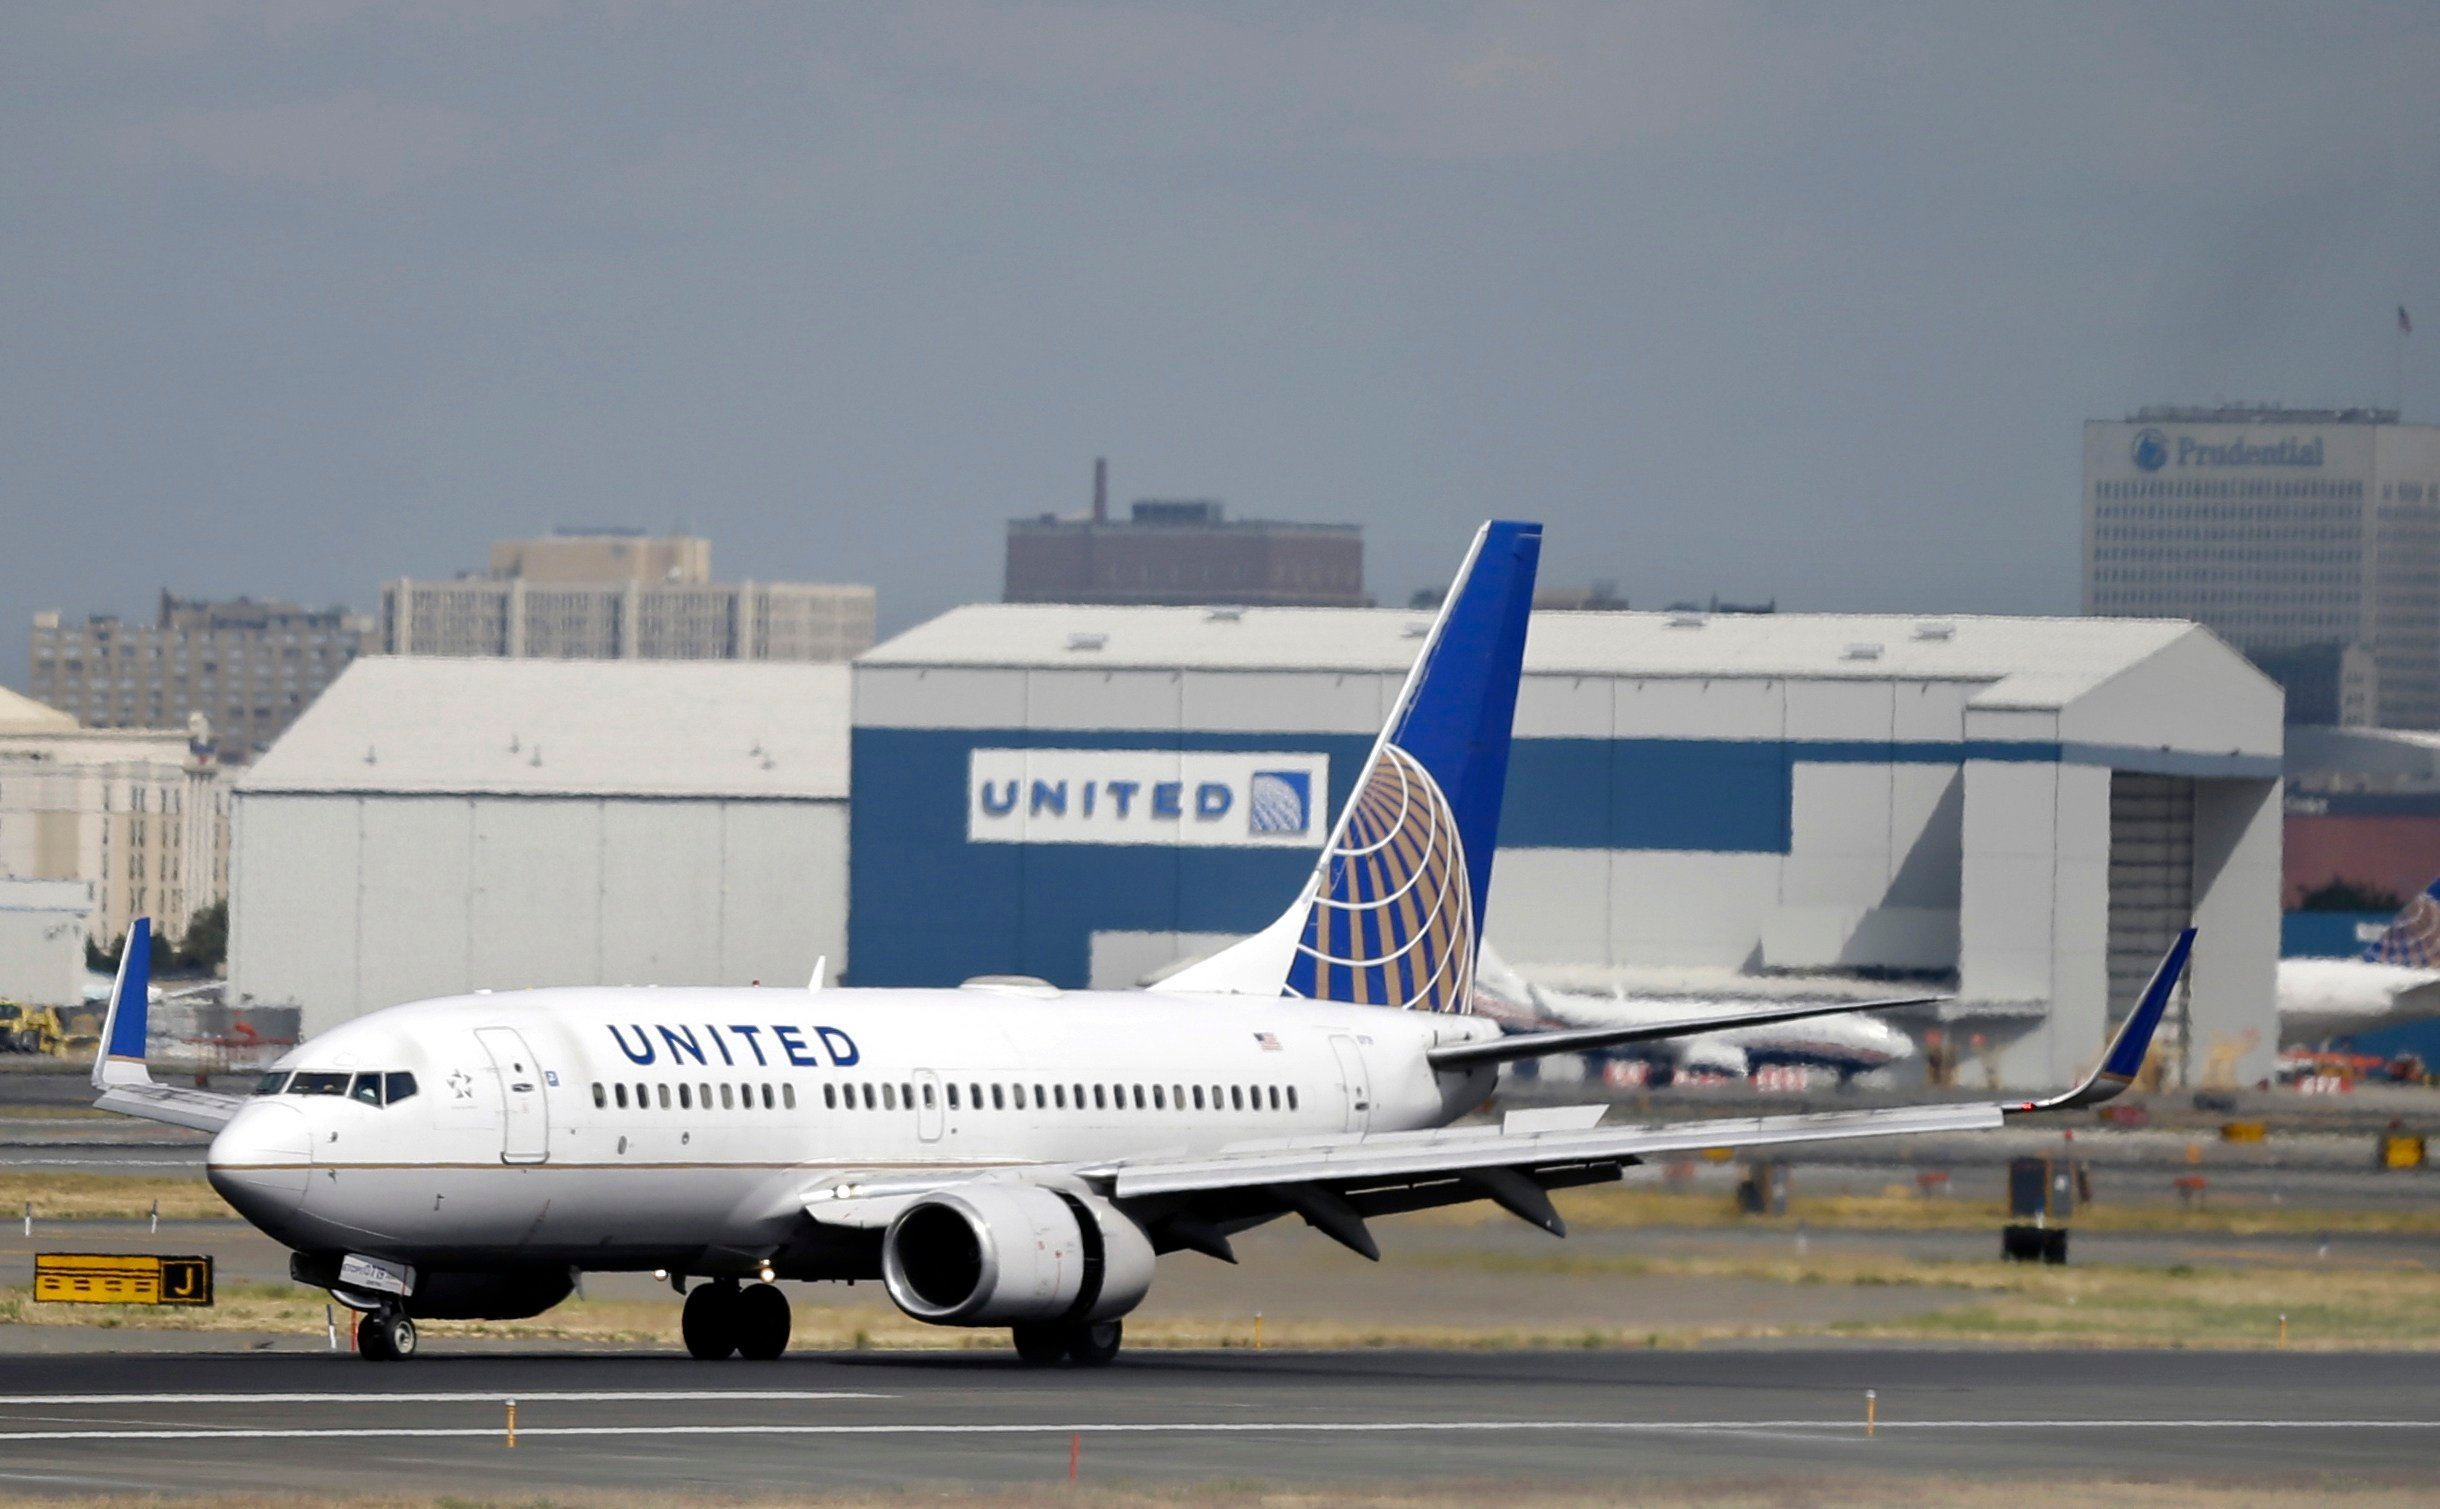 FILE - In this Sept. 8, 2015 file photo, a United Airlines passenger plane lands at Newark Liberty International Airport in Newark, N.J. United Airline fliers will soon get the chance to buy cheaper fares on some of the airline's flights.  (AP Photo/Mel E